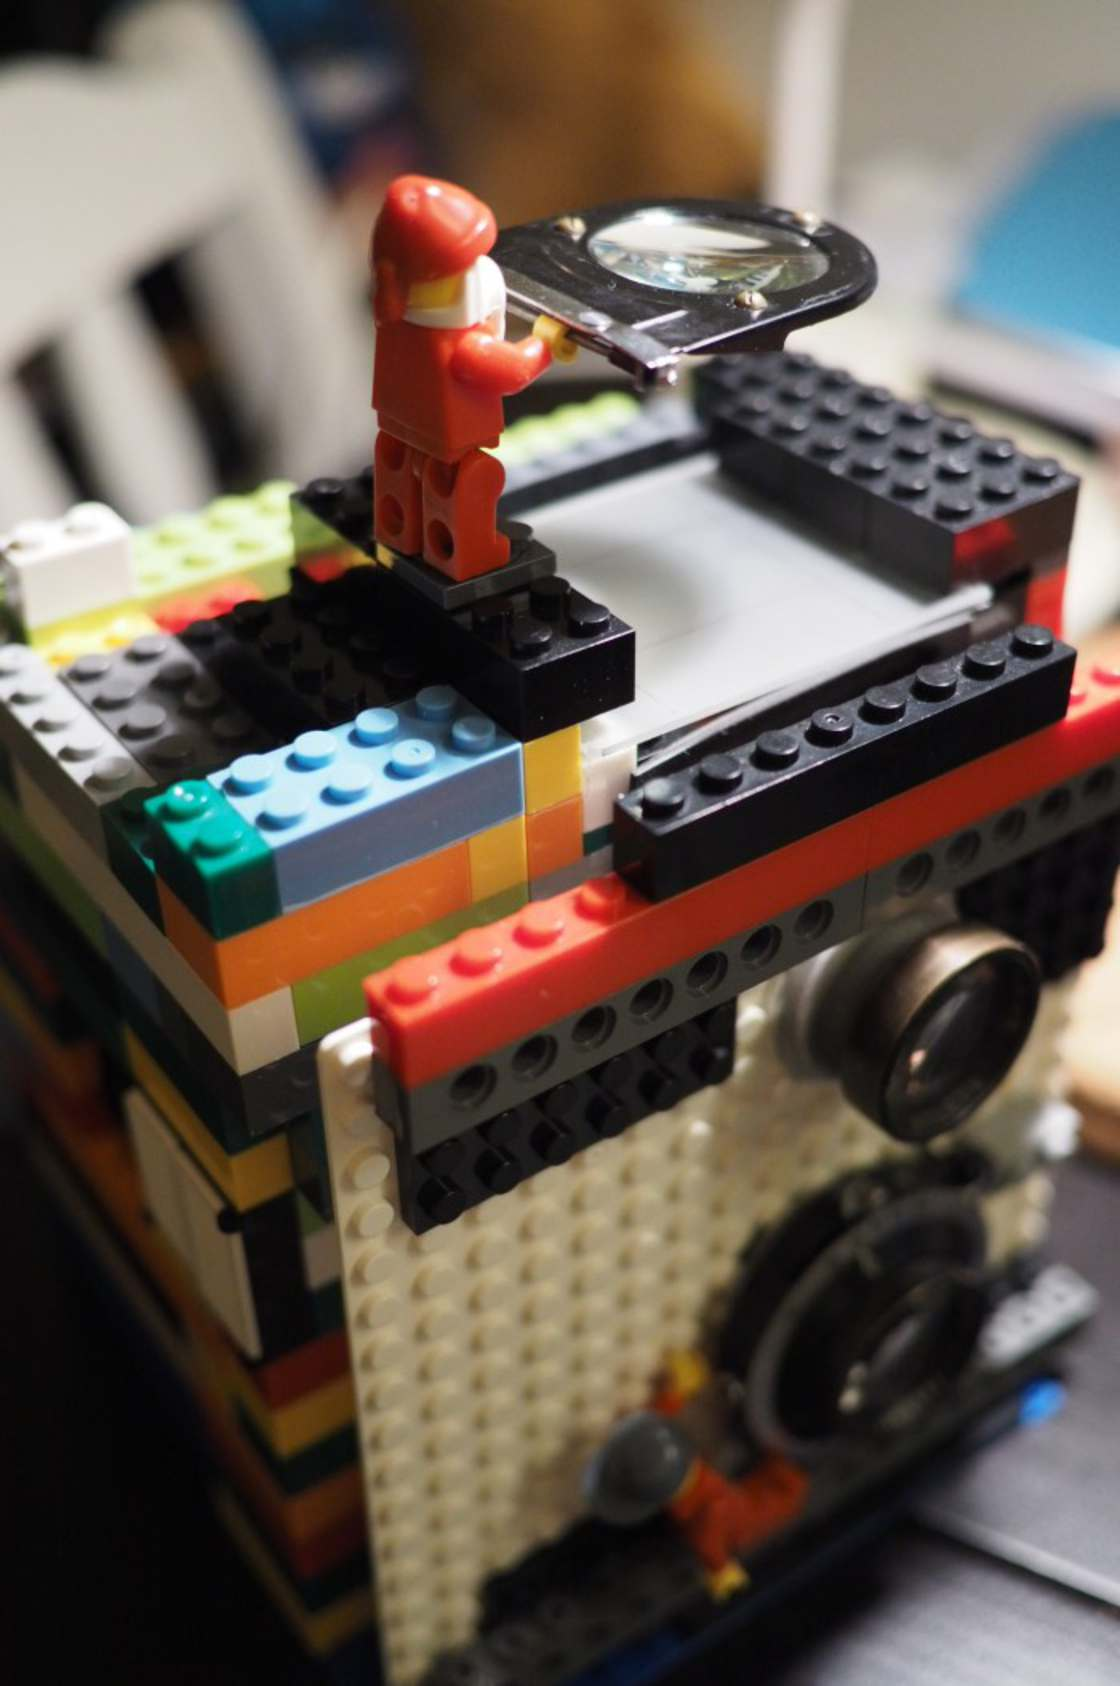 LEGO Camera - Photographer builds a functional LEGO camera